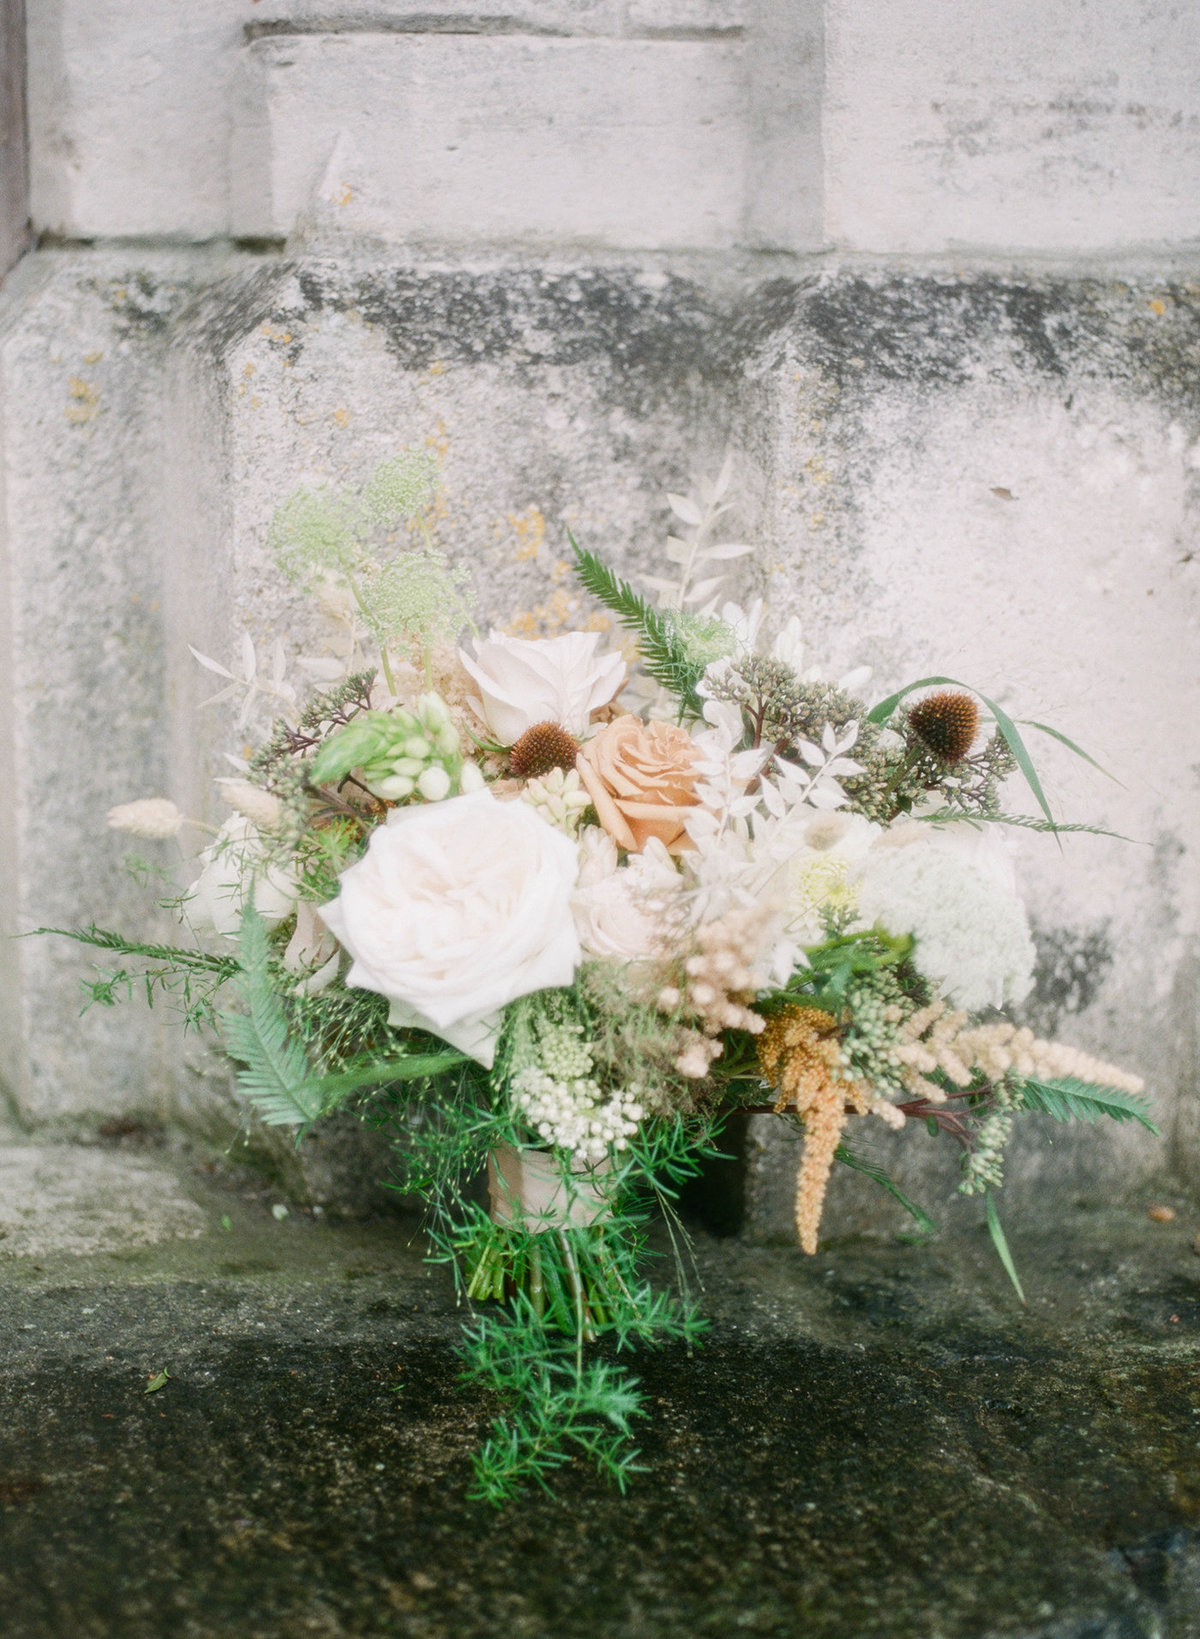 Destination Wedding Photographer - Ireland Editorial - Cliff at Lyons Kildare Ireland - Sarah Sunstrom Photography - 13